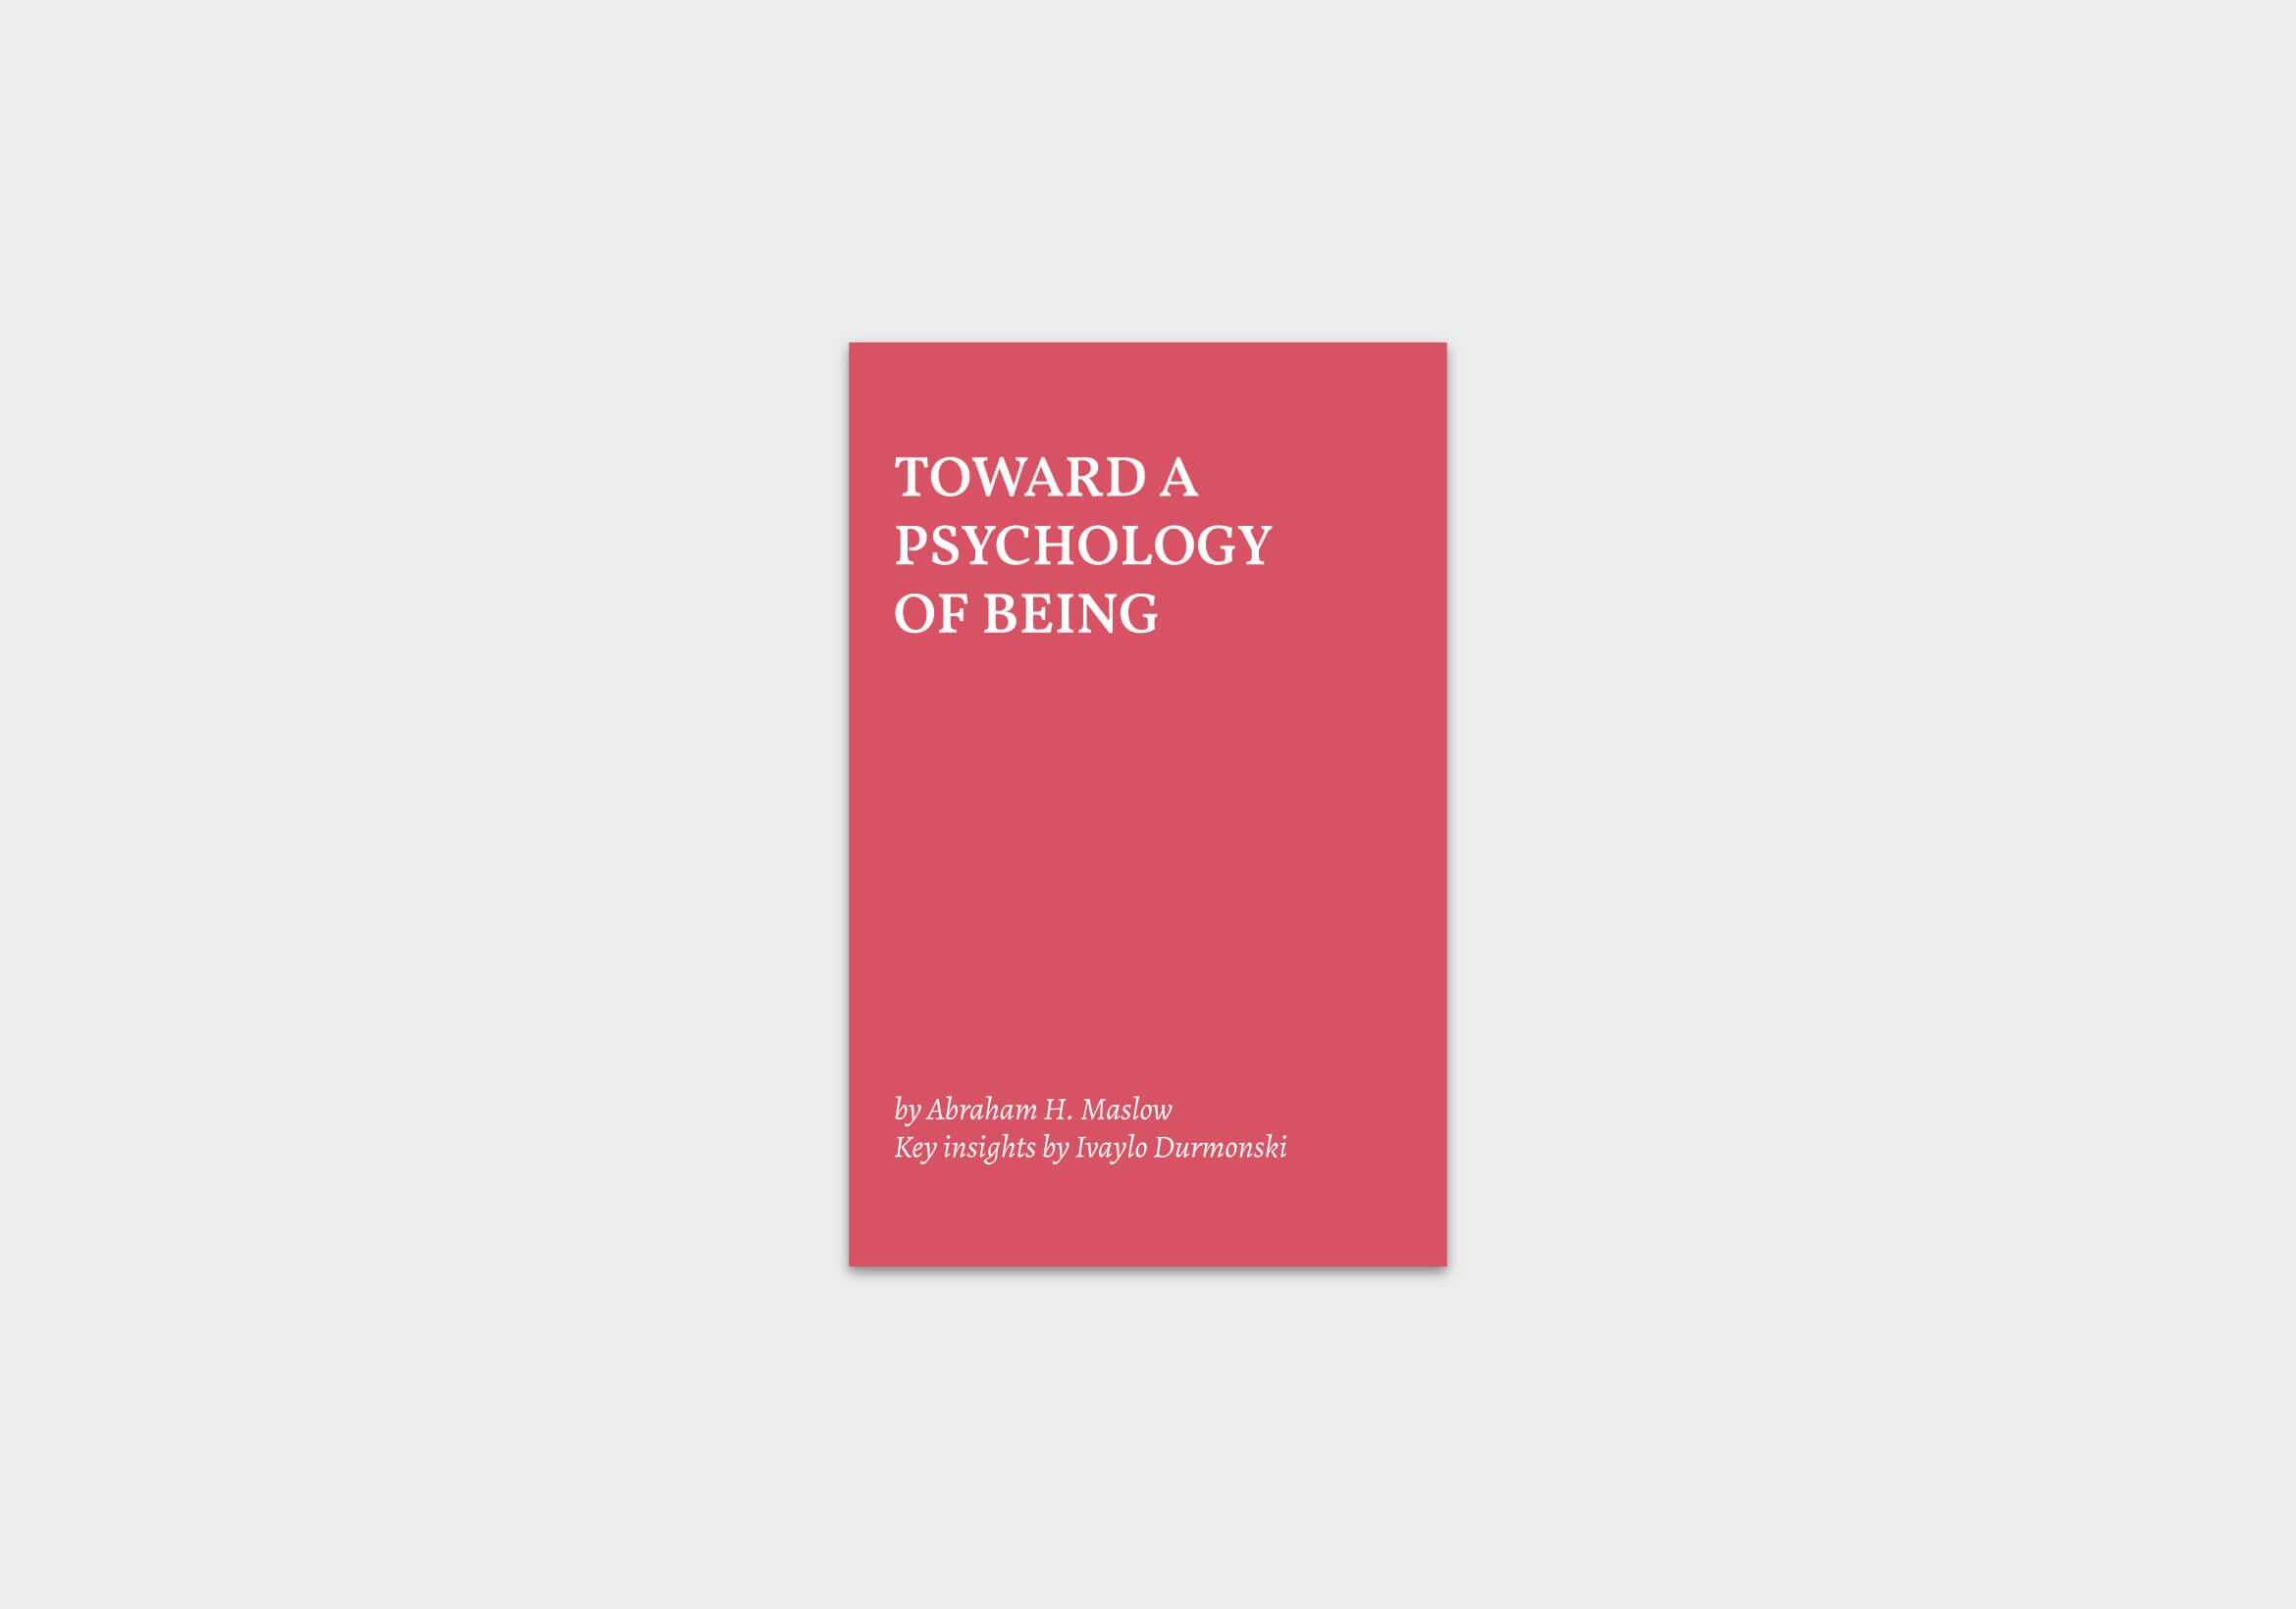 Toward-a-Psychology-of-Being-summary